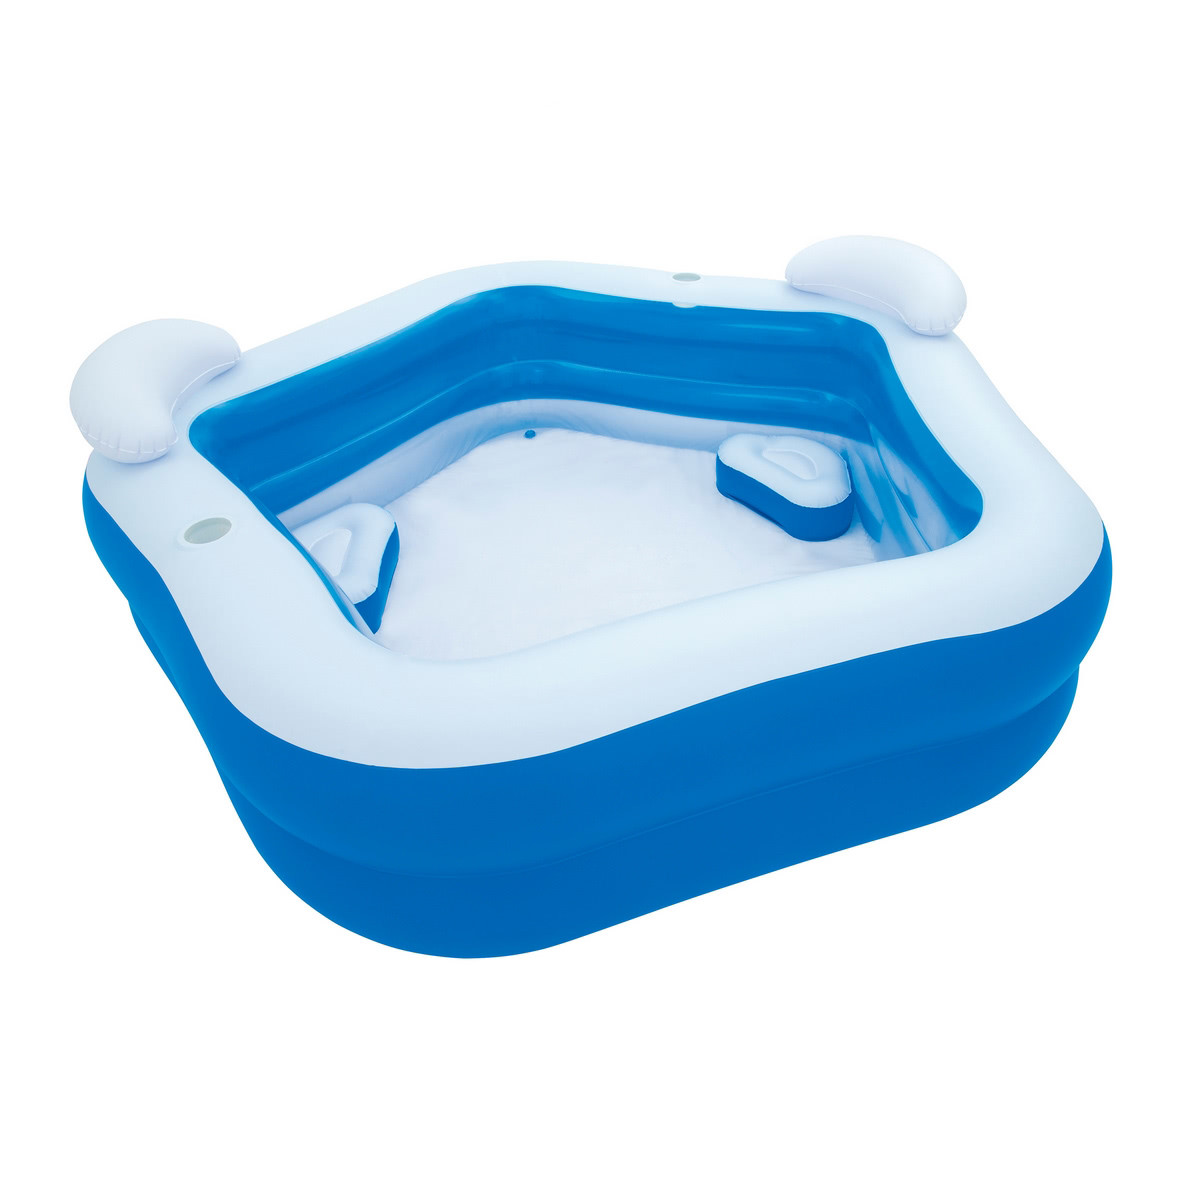 Piscina autoportante hinchable de pvc azul lola home for Piscinas de jardin hinchables